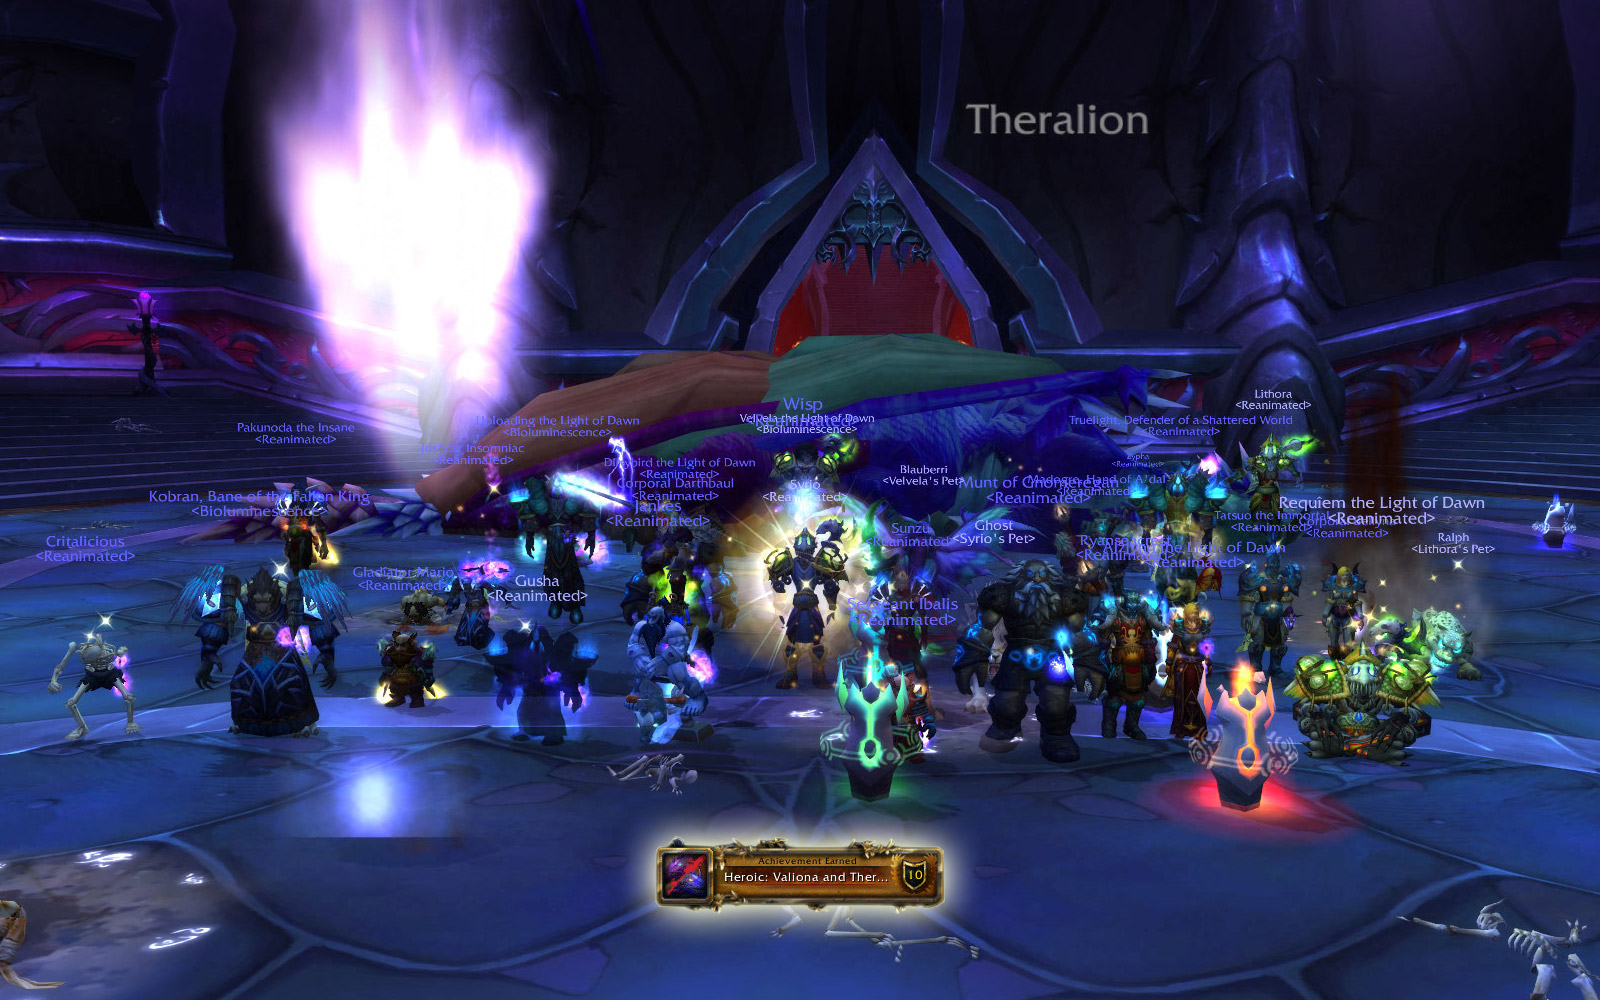 Heroic Bastion of Twilight: Valiona and Theralion